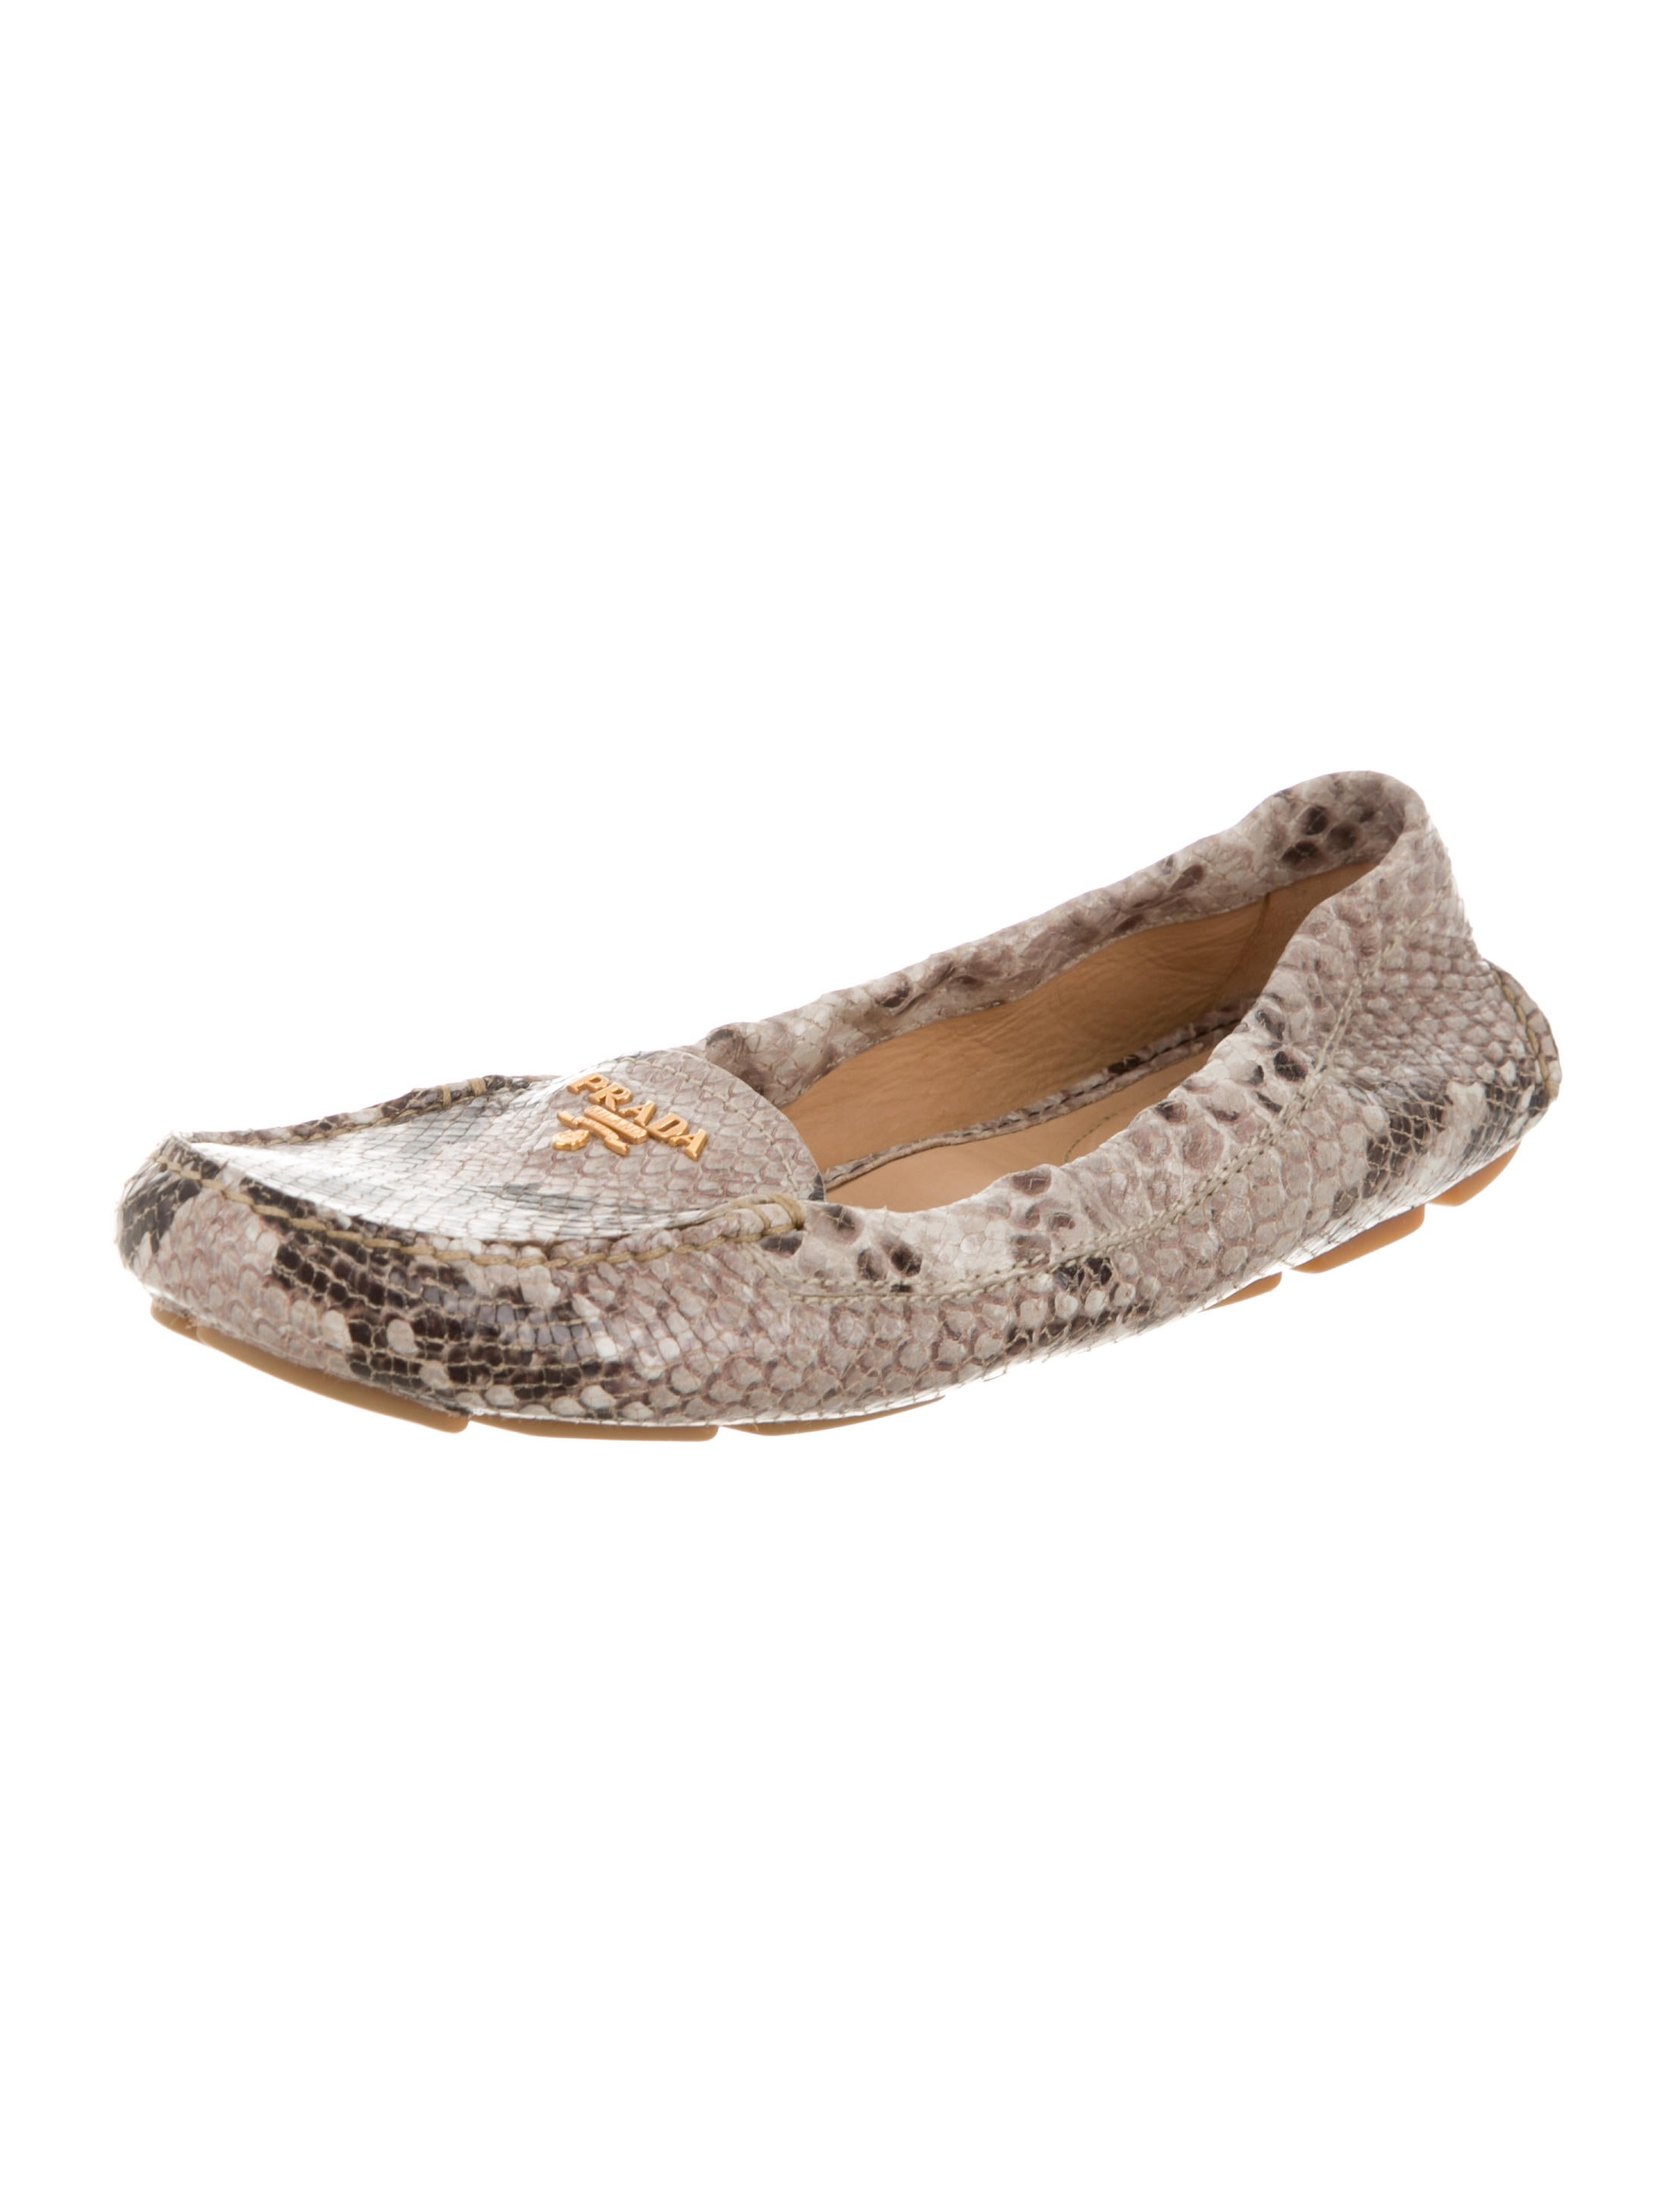 Snakeskin Shoes For Sale